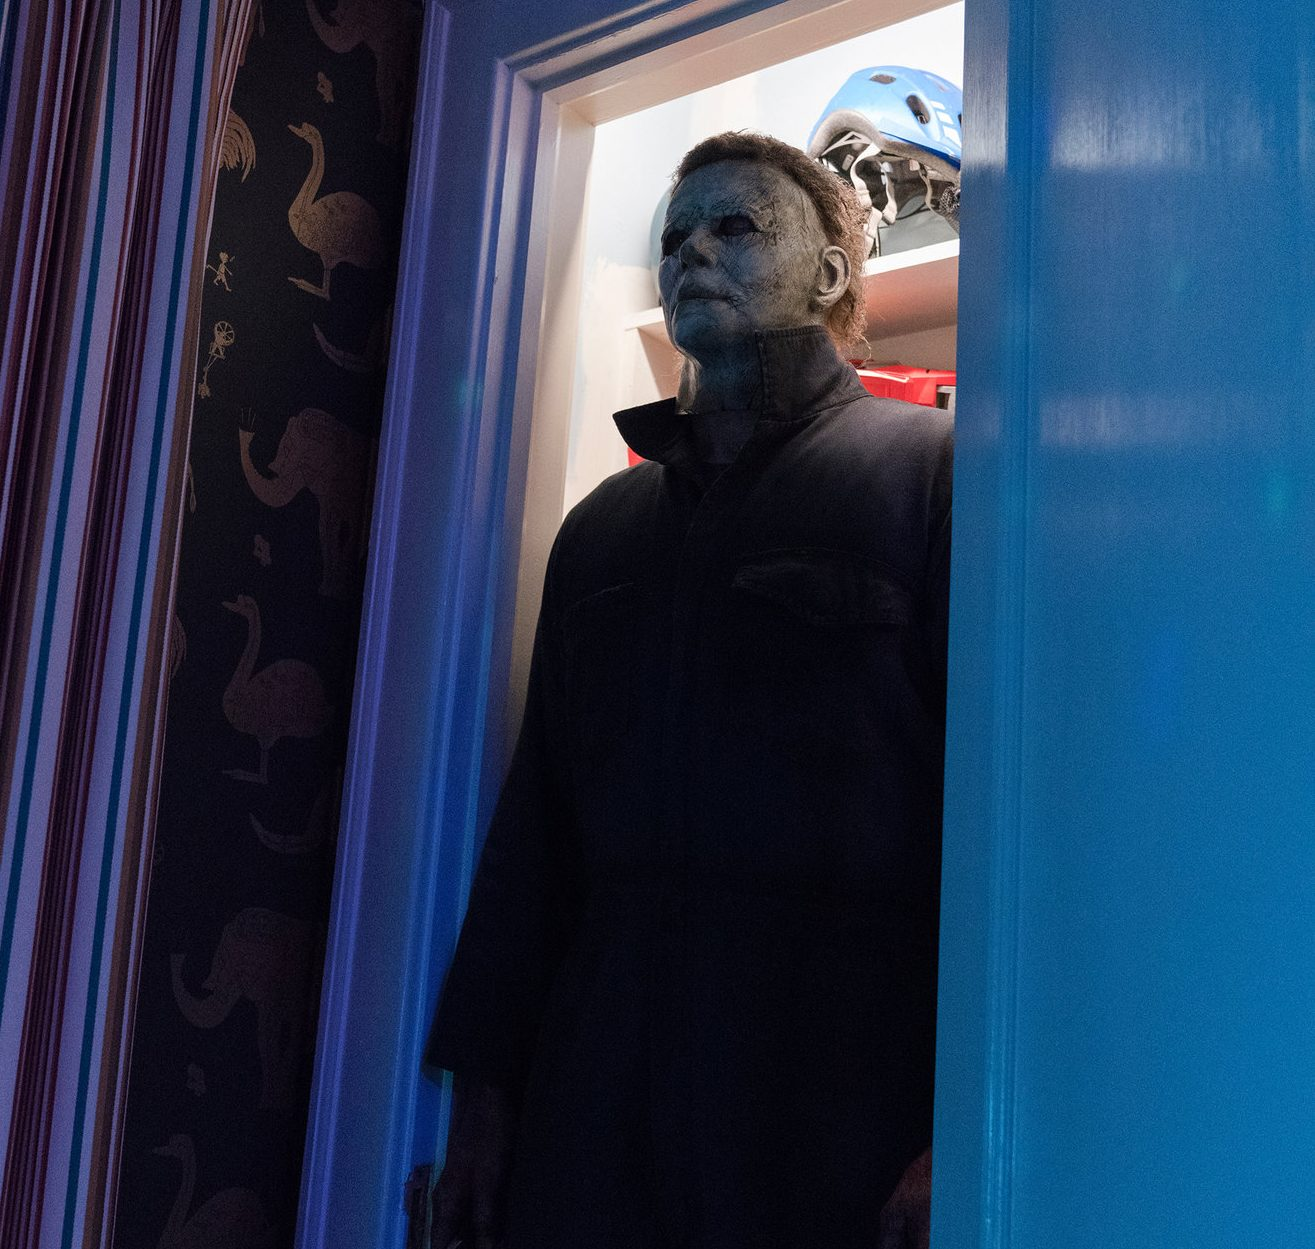 merlin 145348191 0183764a 23ba 416d bc3c 997289159dc0 superJumbo e1604071839941 Halloween Vs. Friday The 13th: Which Is The Best Horror Movie Series?